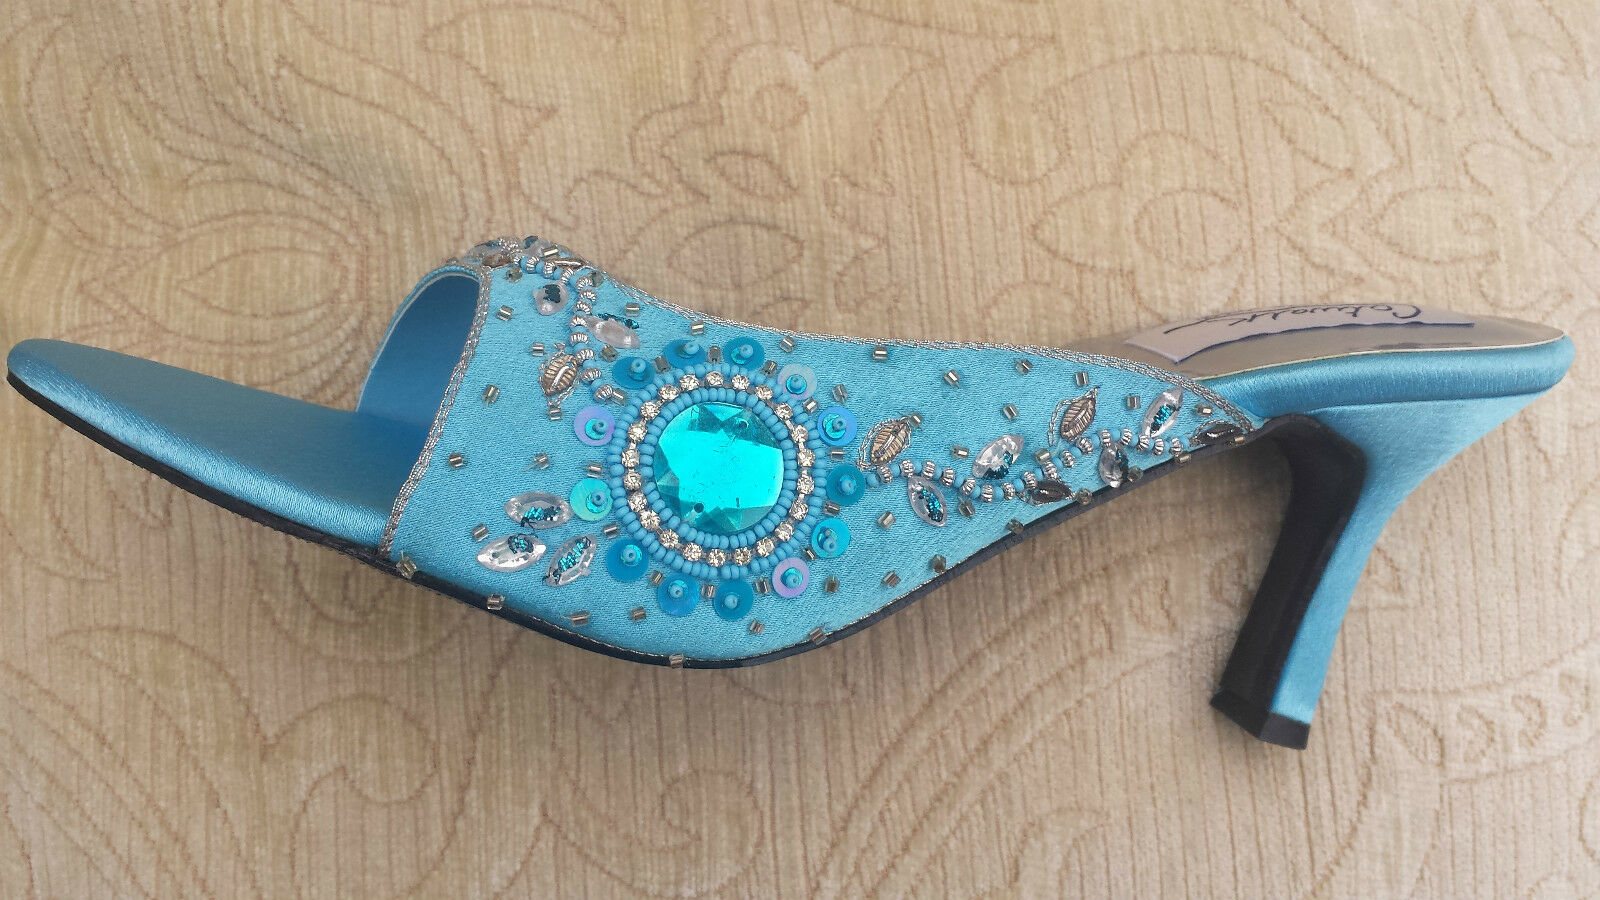 TURQUOISE LADIES WEDDING PARTY SLIPPER/MULES/<wbr/>BACKLESS SMALL HEEL SIZE 9